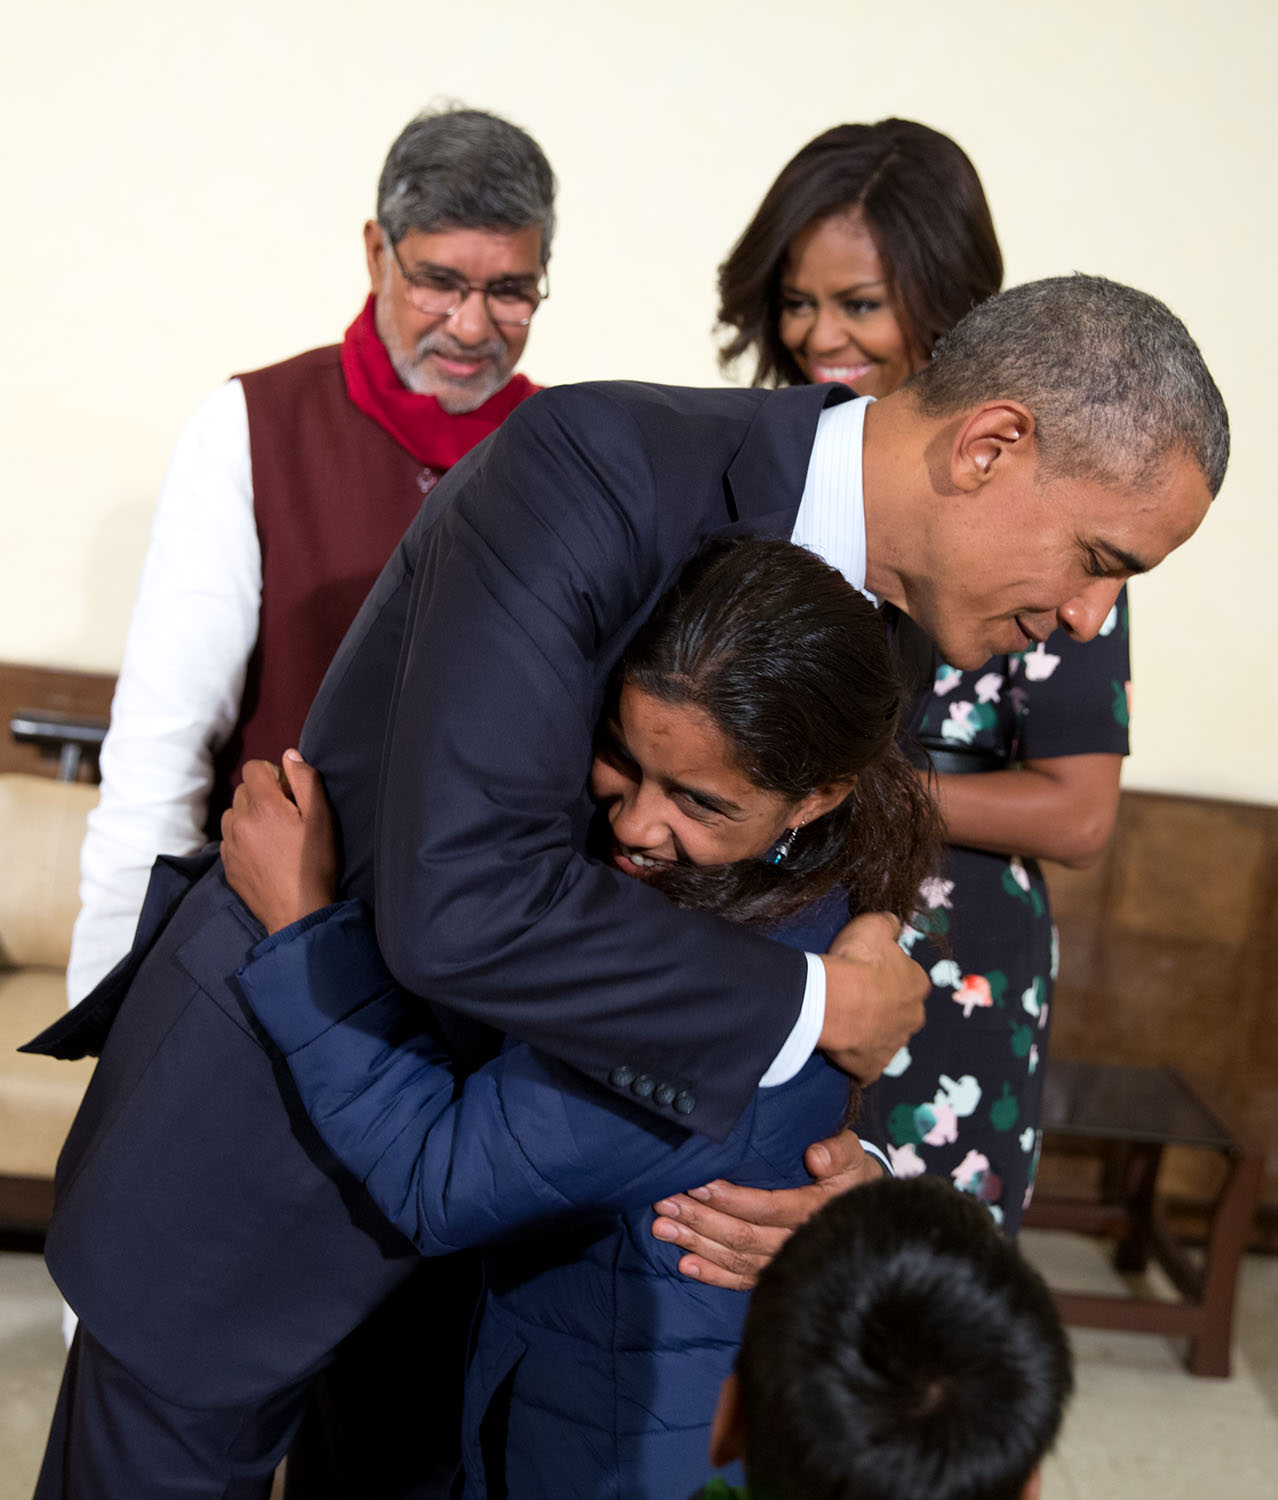 President Obama Greets a Young Girl in India